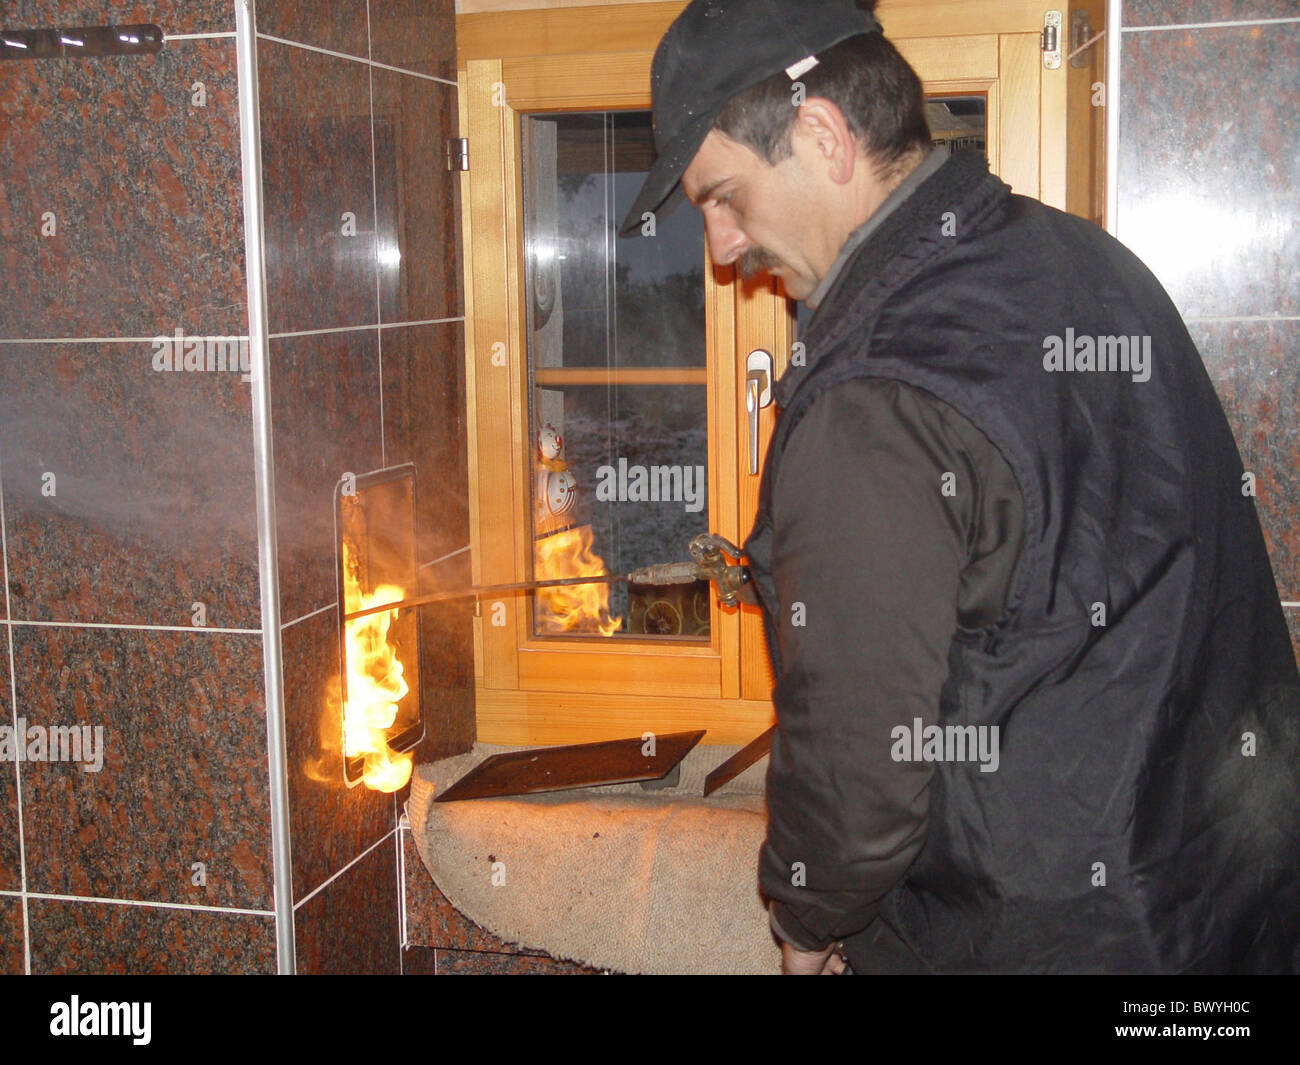 chimney chimney sweep chimneysweep fireplace fires flames inside